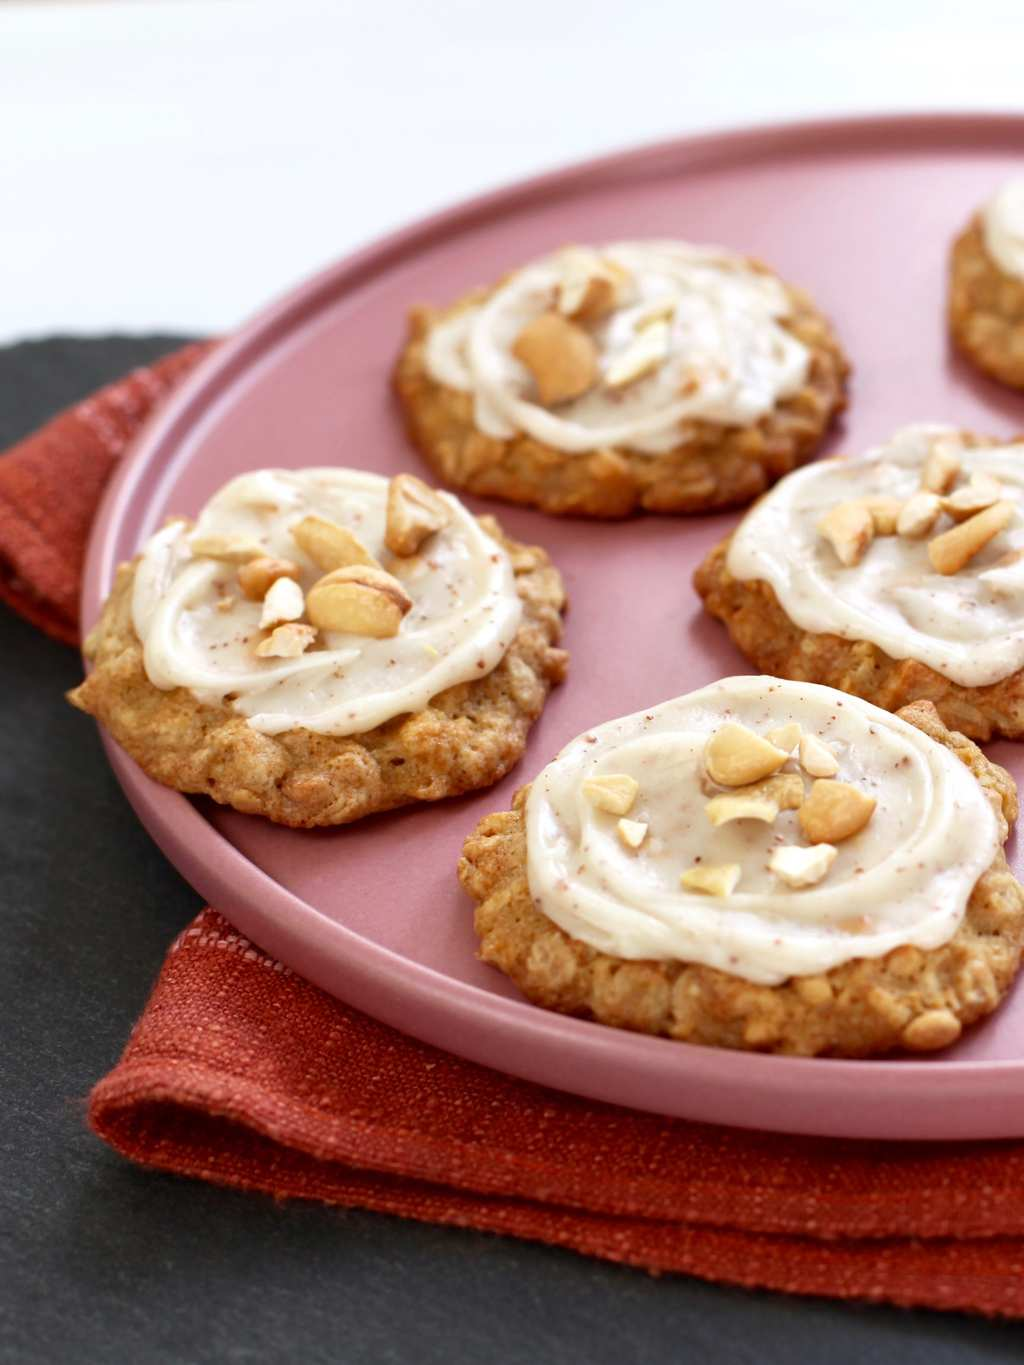 Cashew Cookies with Brown Butter Frosting on a pink plate